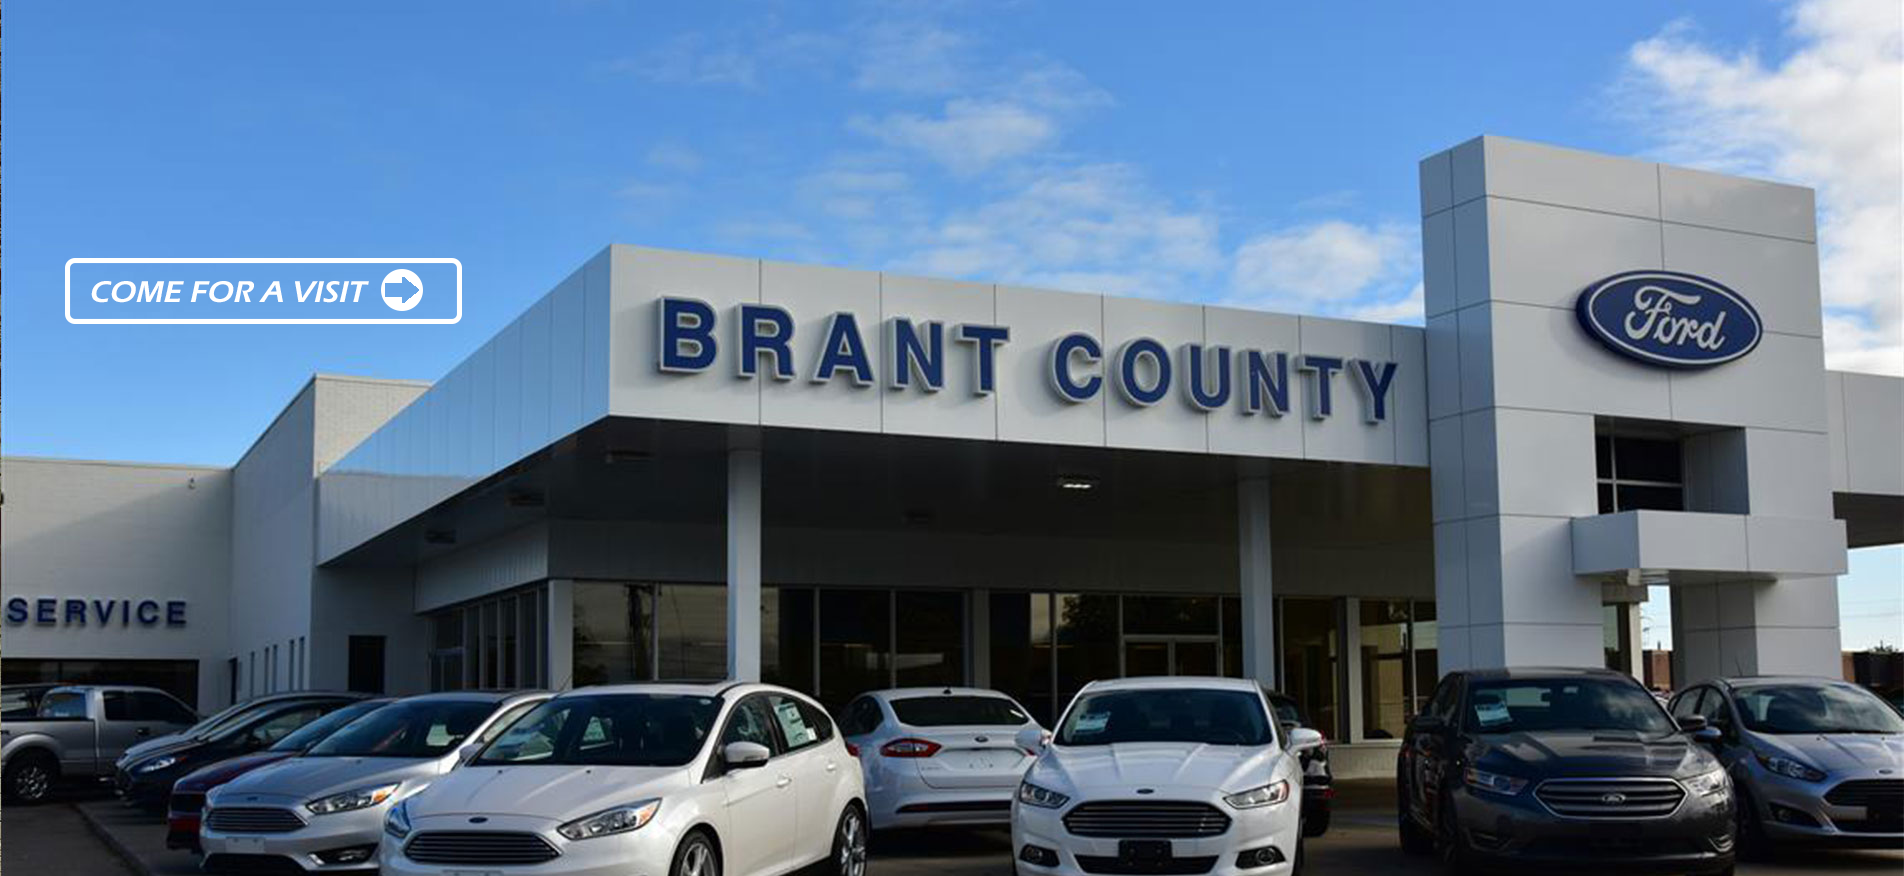 Brant County Ford Dealership